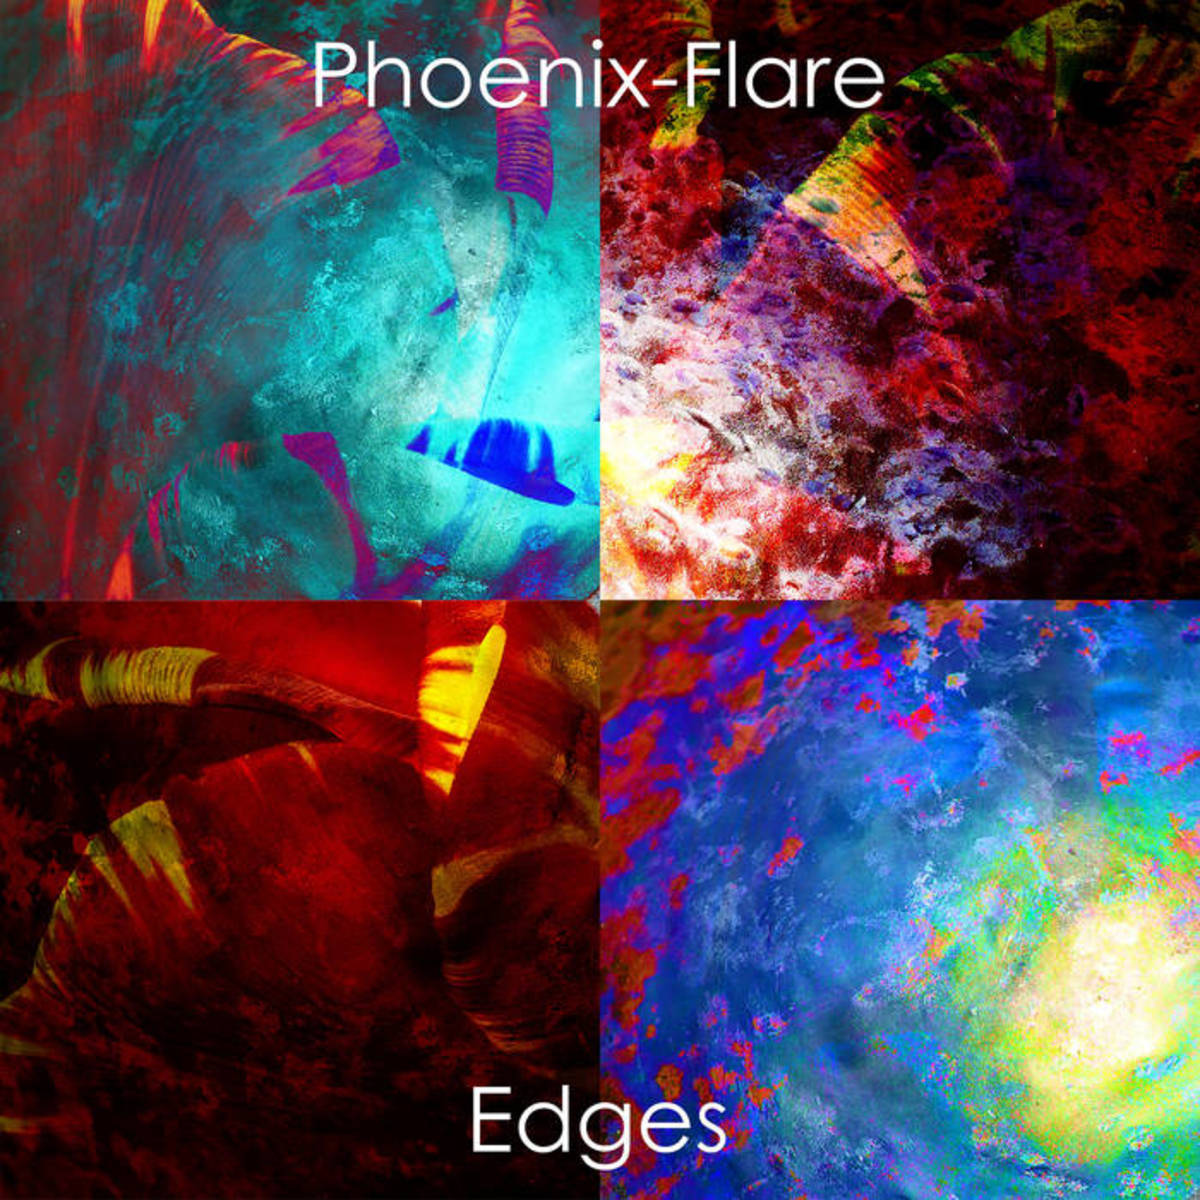 Synthpop EP Review: Edges by Phoenix-Flare